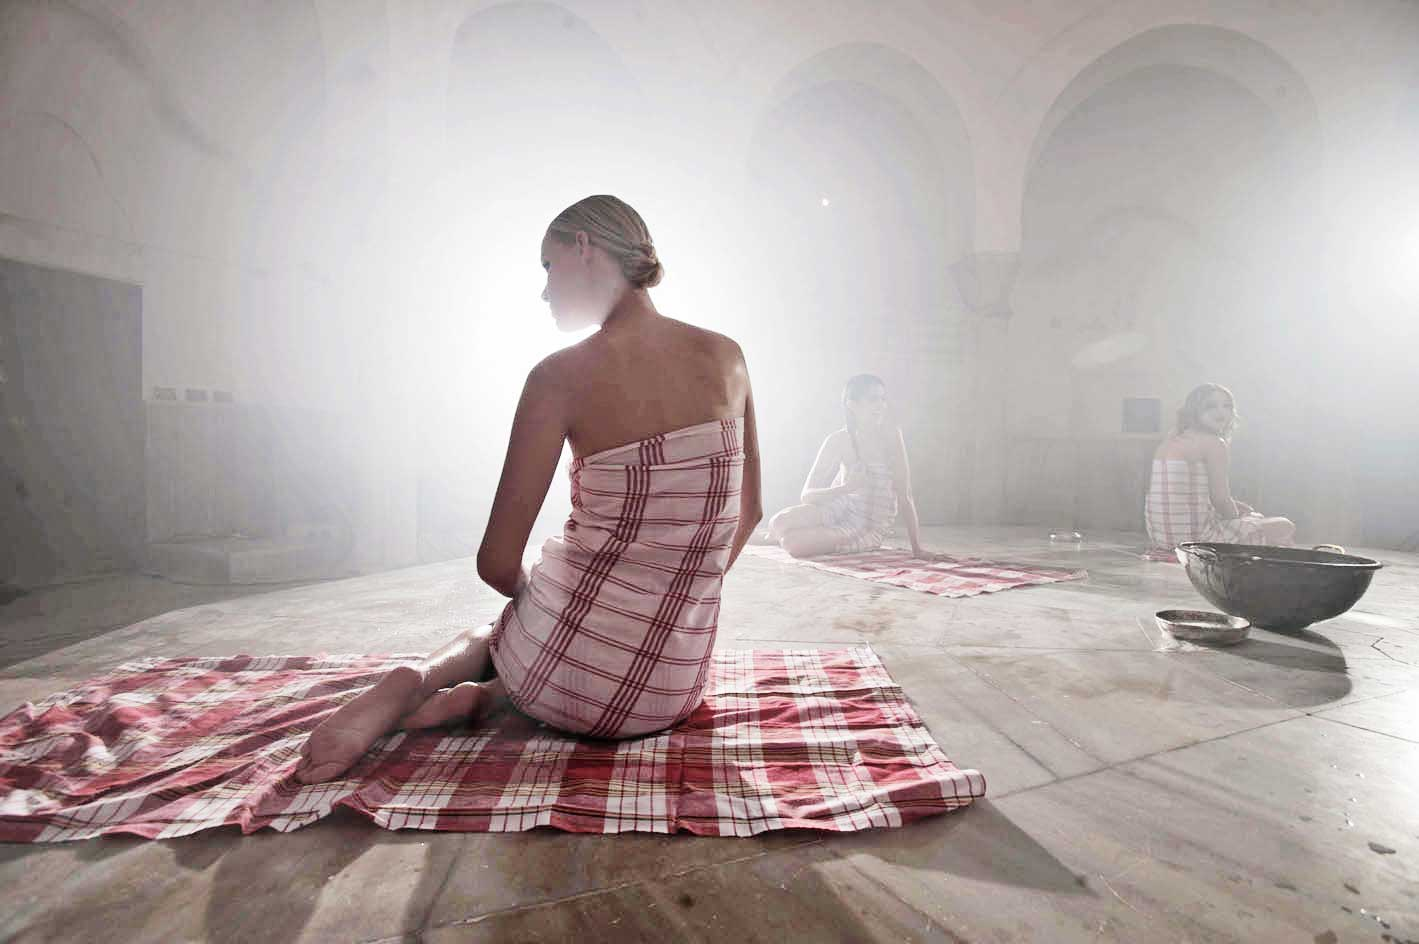 #HosGoGlobal to Istanbul - The Turkish bath Experience